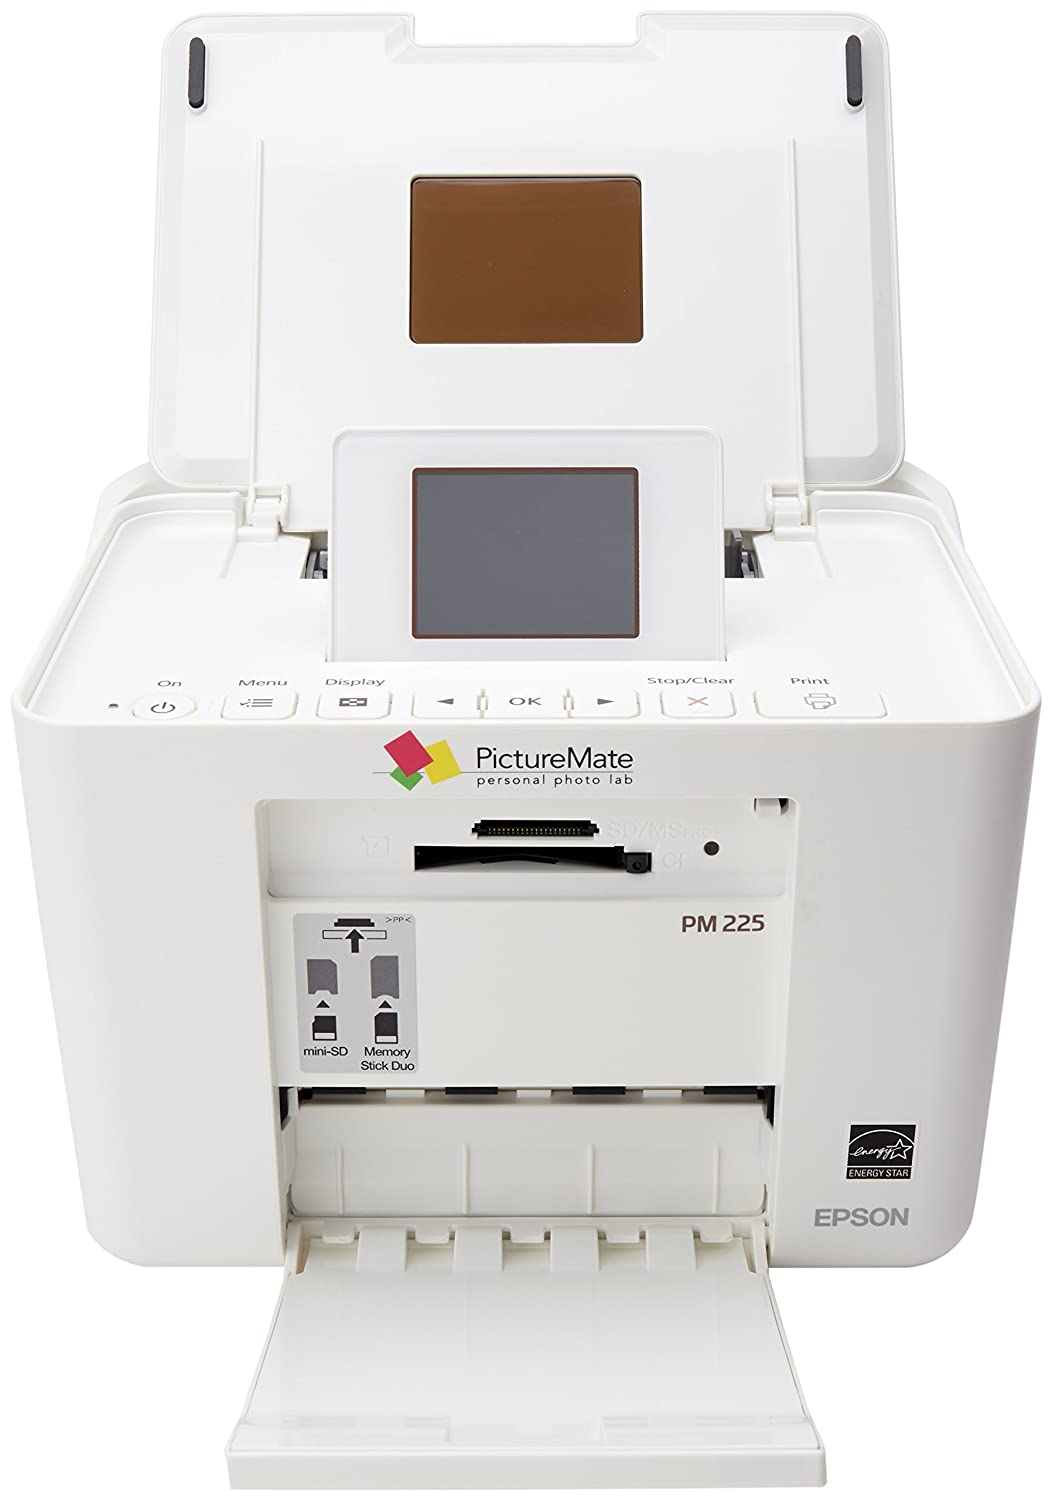 Epson Picturemate Charm Pm 225 15 Watts Compact Photo Printer